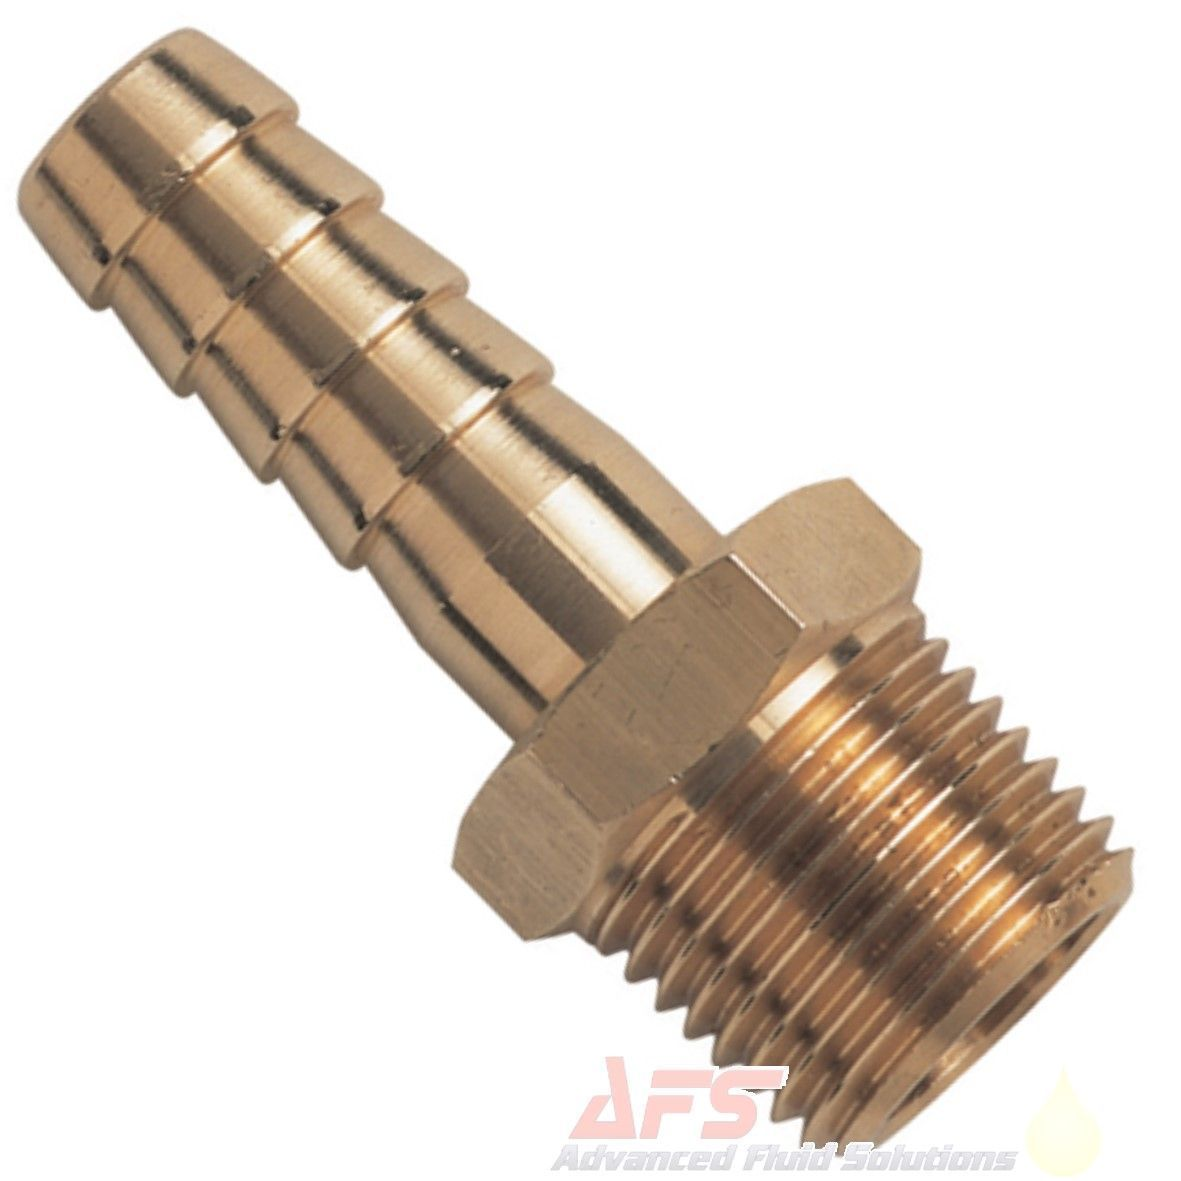 1 4 Npt >> 1 4 Npt Male X 1 2 13mm Hosetail Brass Fitting